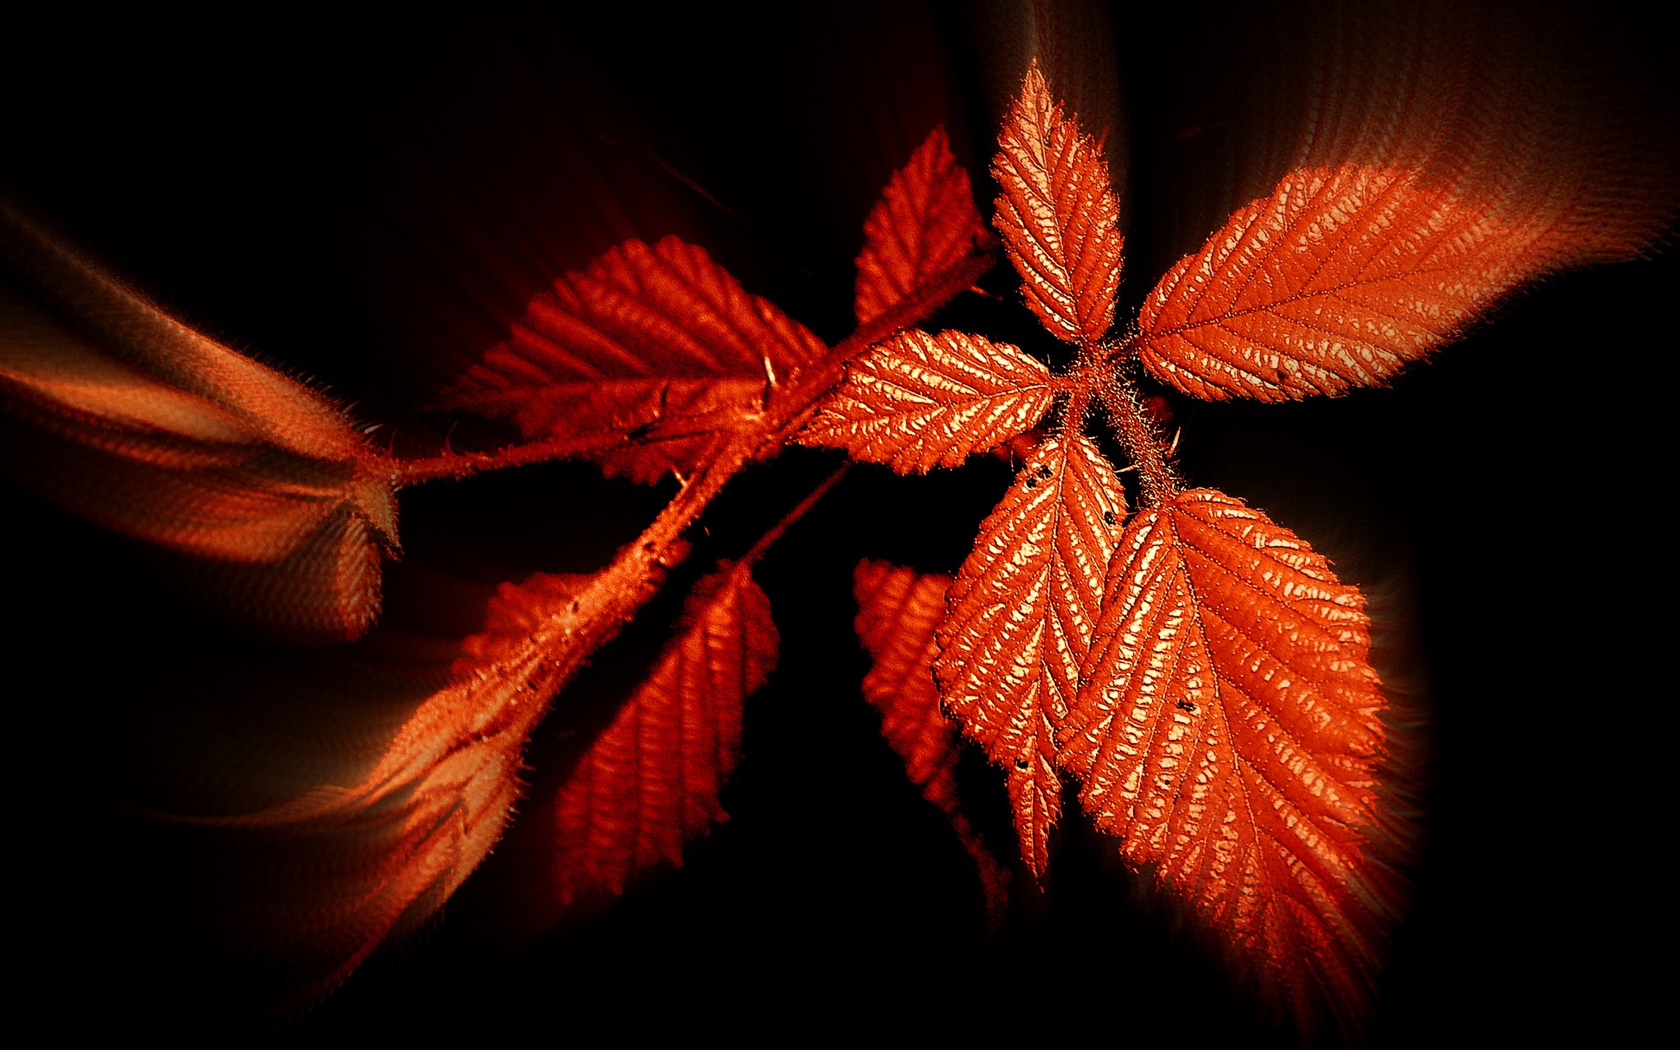 Autumn, red leaves, black background 1680x1050 wallpaper